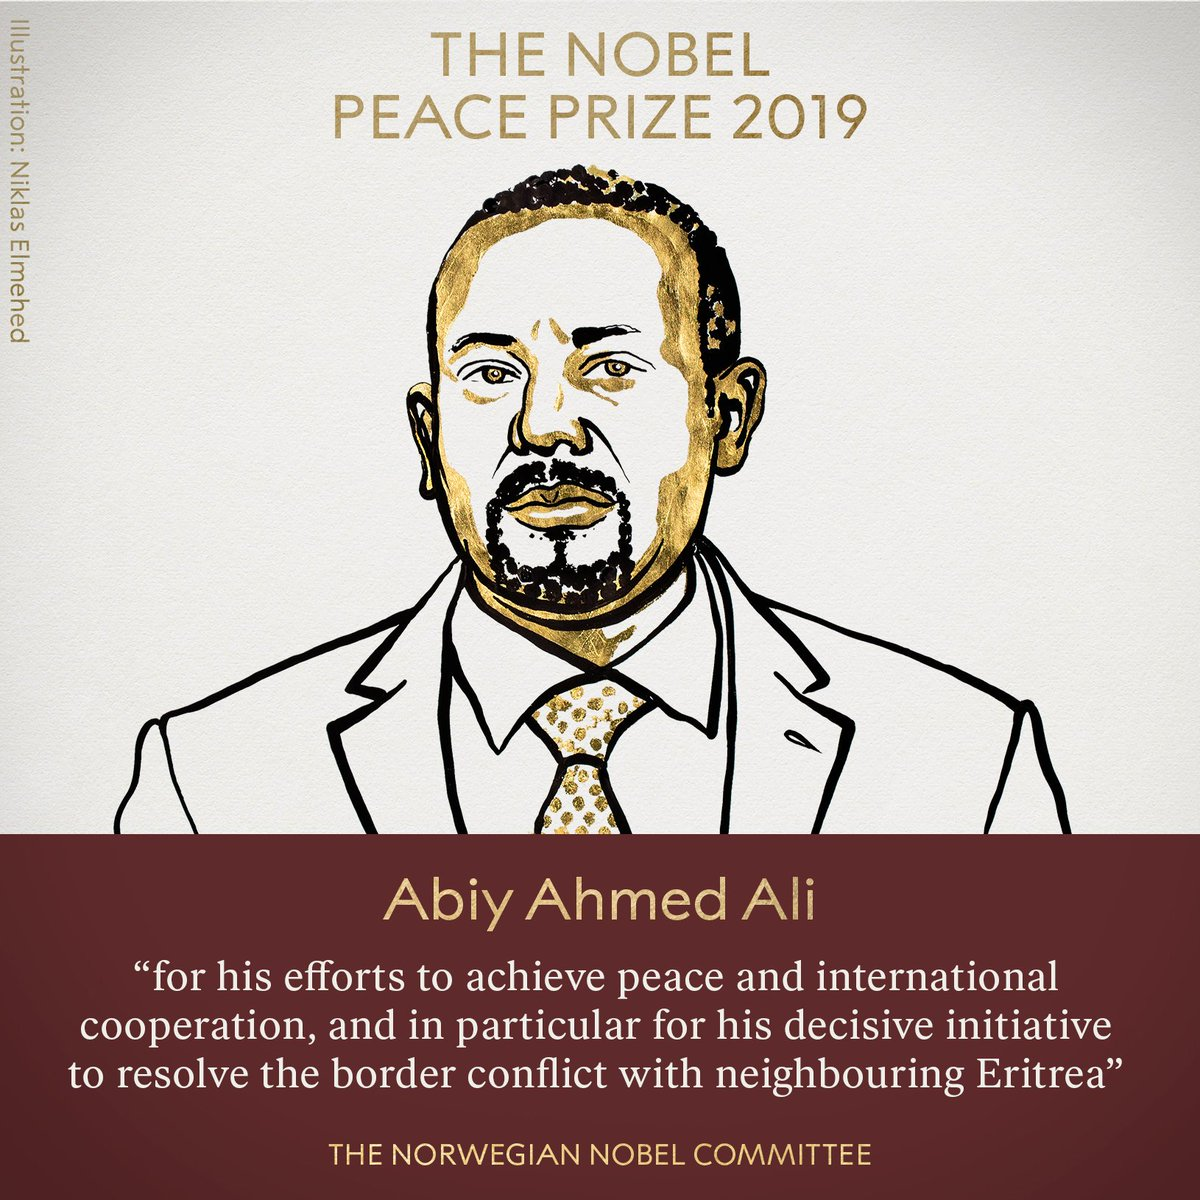 BREAKING NEWS: The Norwegian Nobel Committee has decided to award the Nobel Peace Prize for 2019 to Ethiopian Prime Minister Abiy Ahmed Ali.  #NobelPrize #NobelPeacePrize